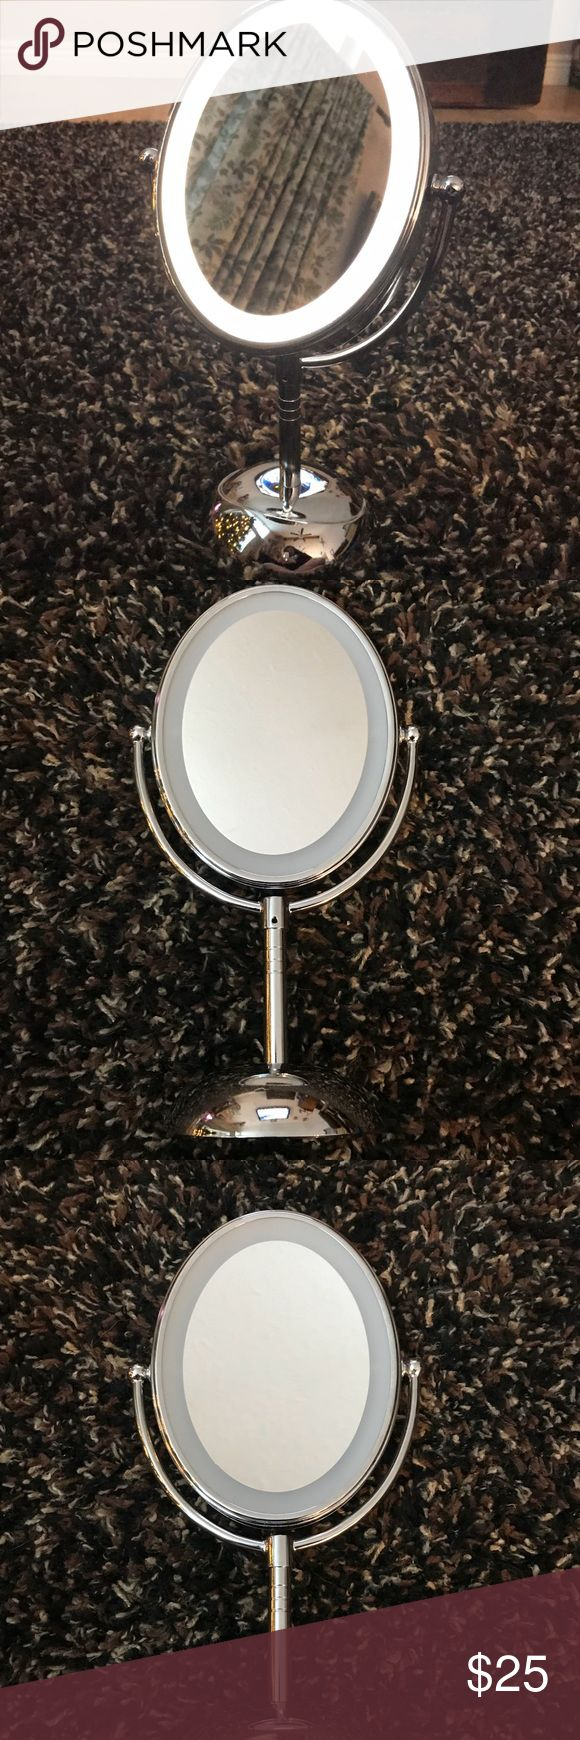 Conair oval lighted makeup mirror Like new! Barely used! Very bright light great for daily use! 25 OBO conair Makeup Brushes & Tools